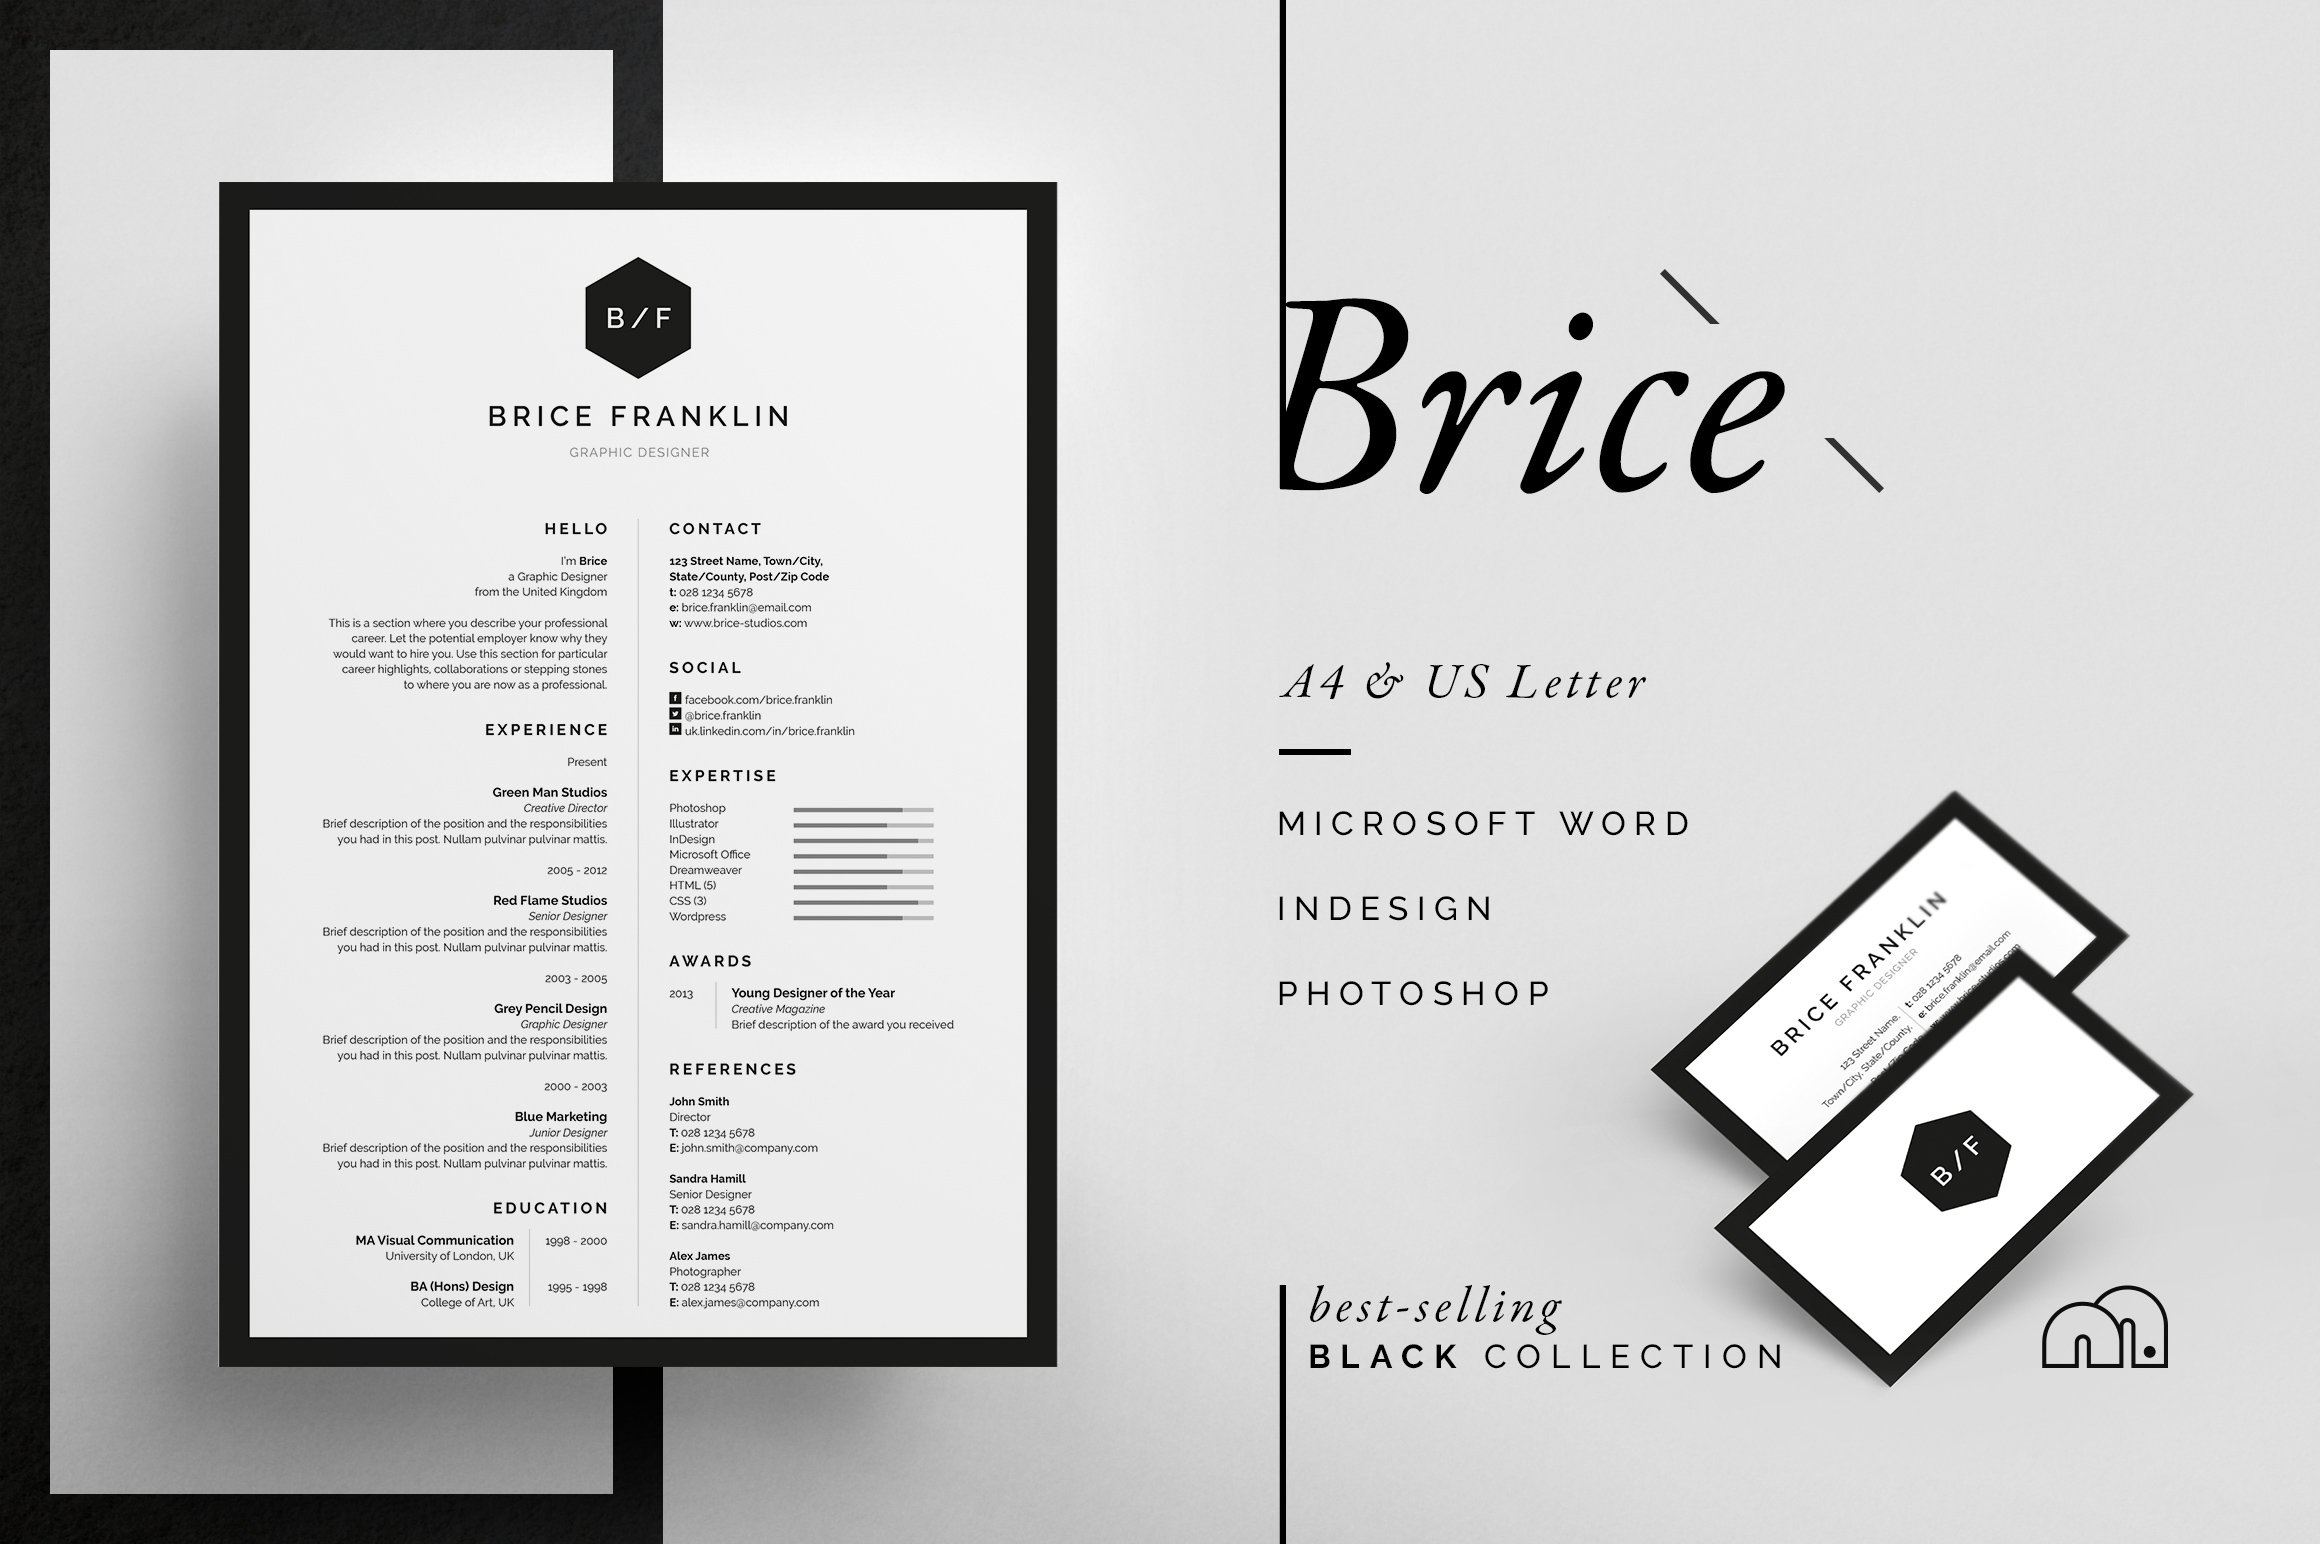 a font texture brush resume template more resume cv template brice - Best Font For Resume